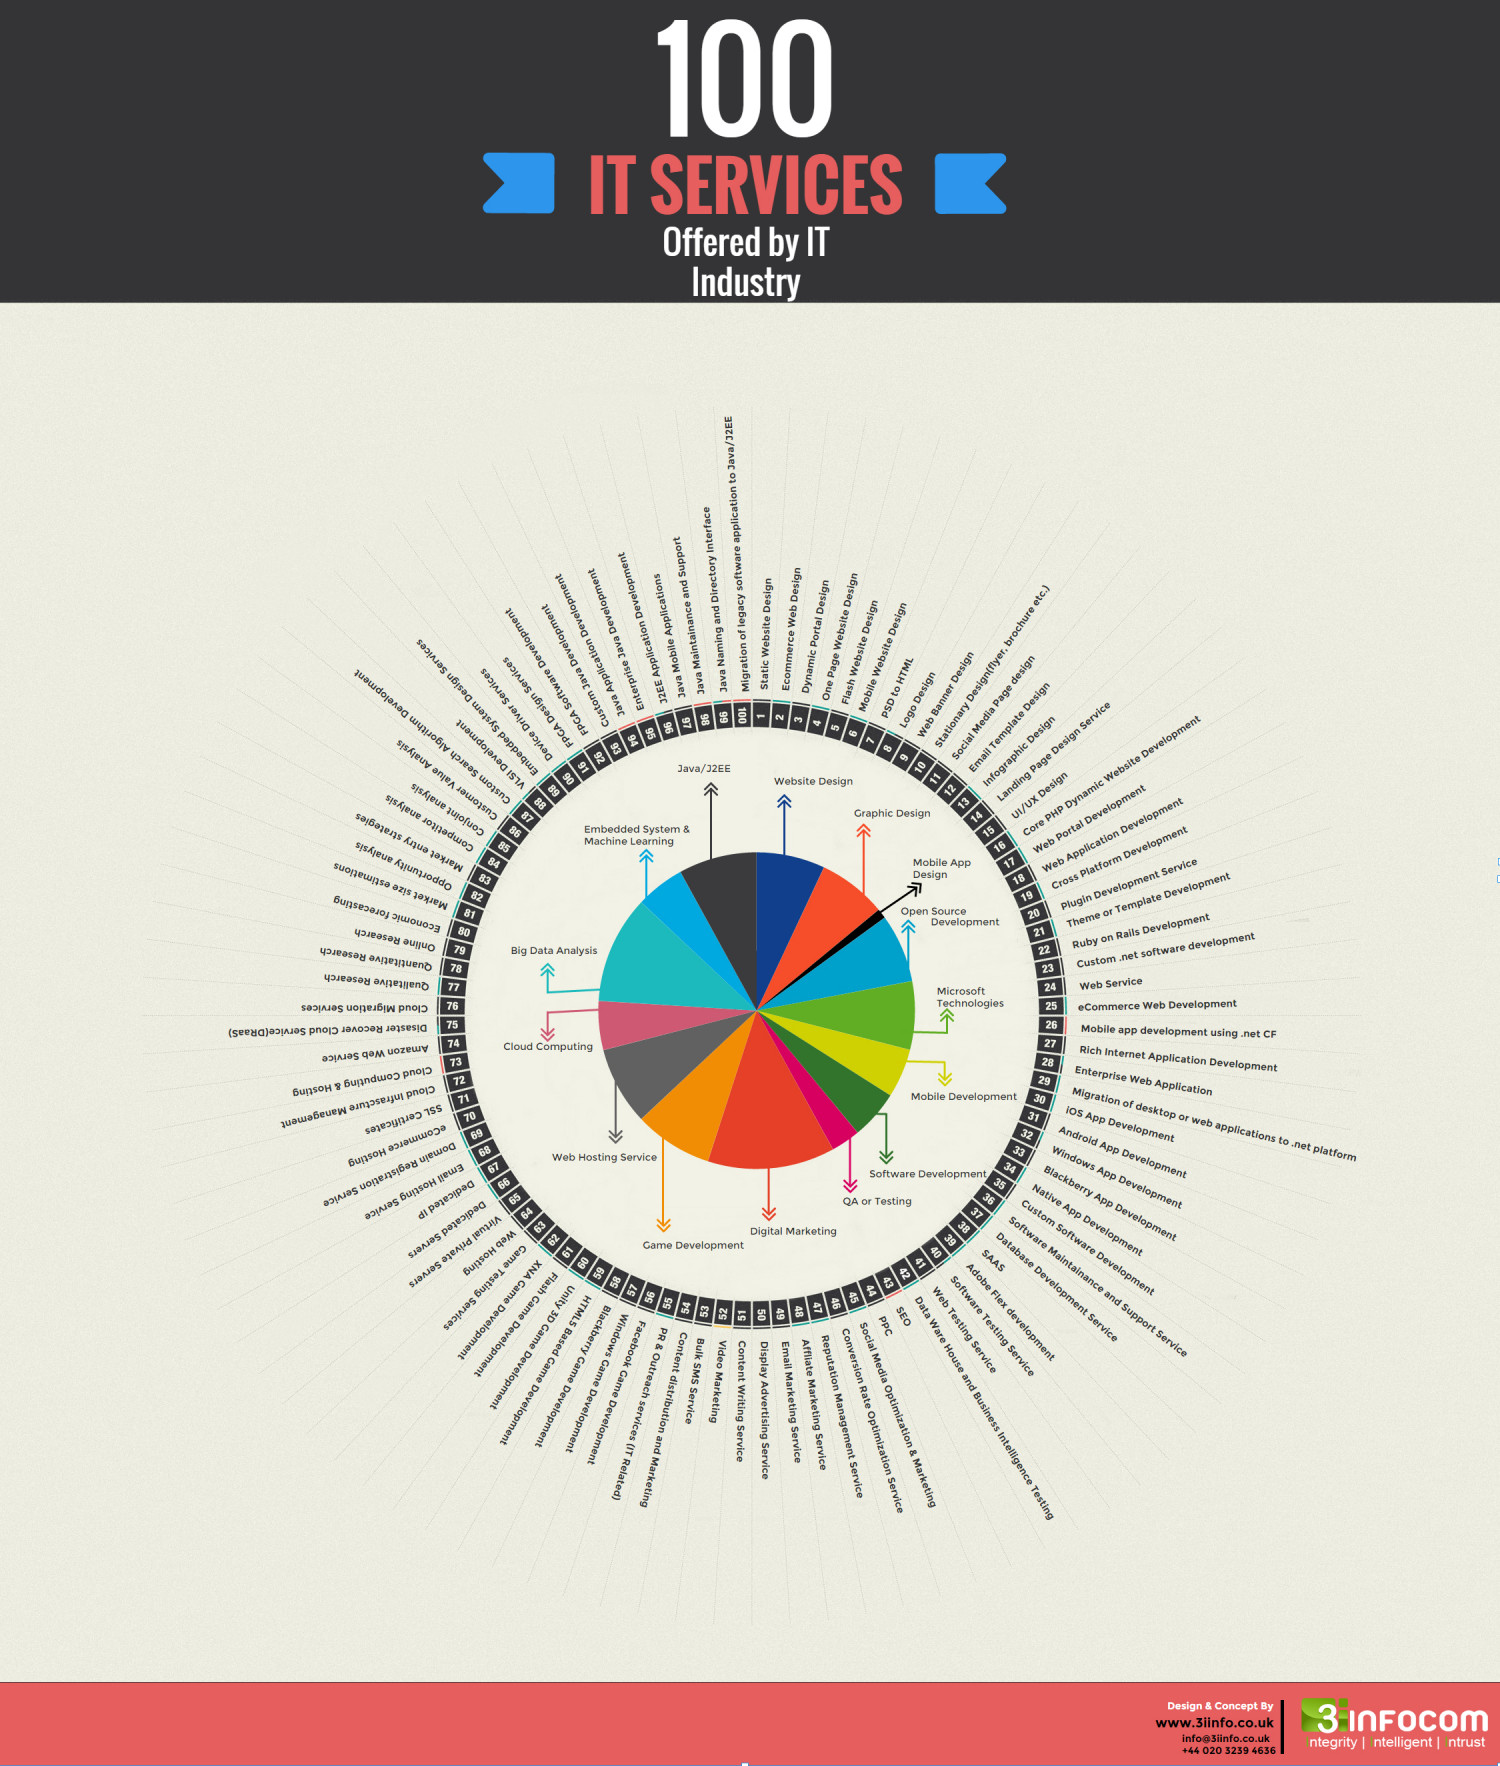 100 IT Services Offered By IT Industry Infographic